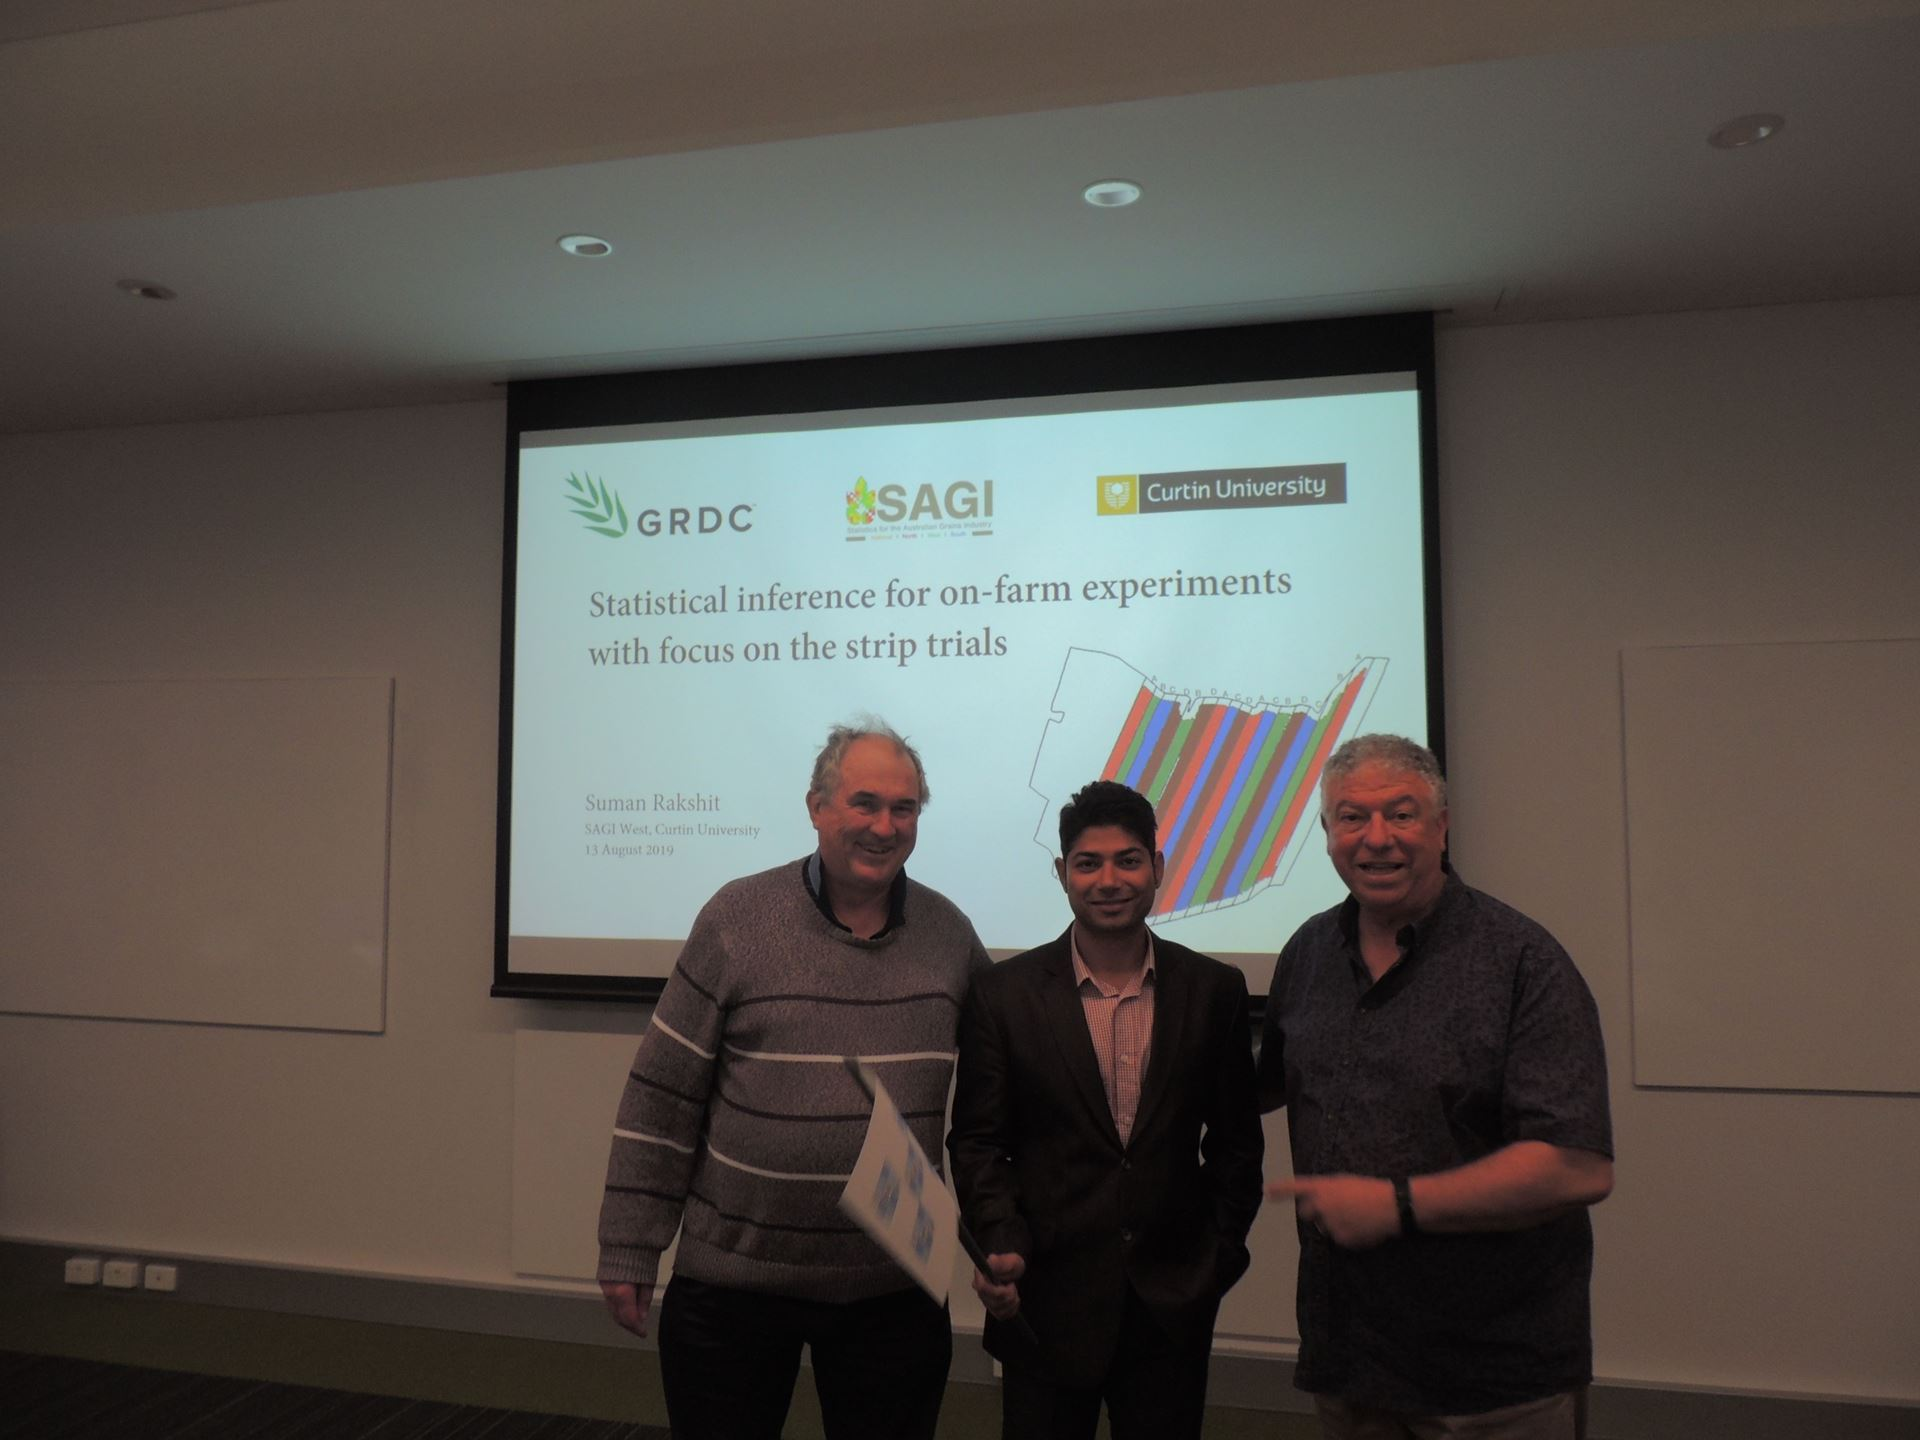 The photo shows Dr Suman Rakshit (centre) with the president of the WA Branch of the SSA Dr Brenton Clarke (left) and the former President of the IBS-AR Mario D'Antuono (right) who helped arrange the joint meeting. (Photo Courtesy of Dean Diepeveen using Mario's Camera)